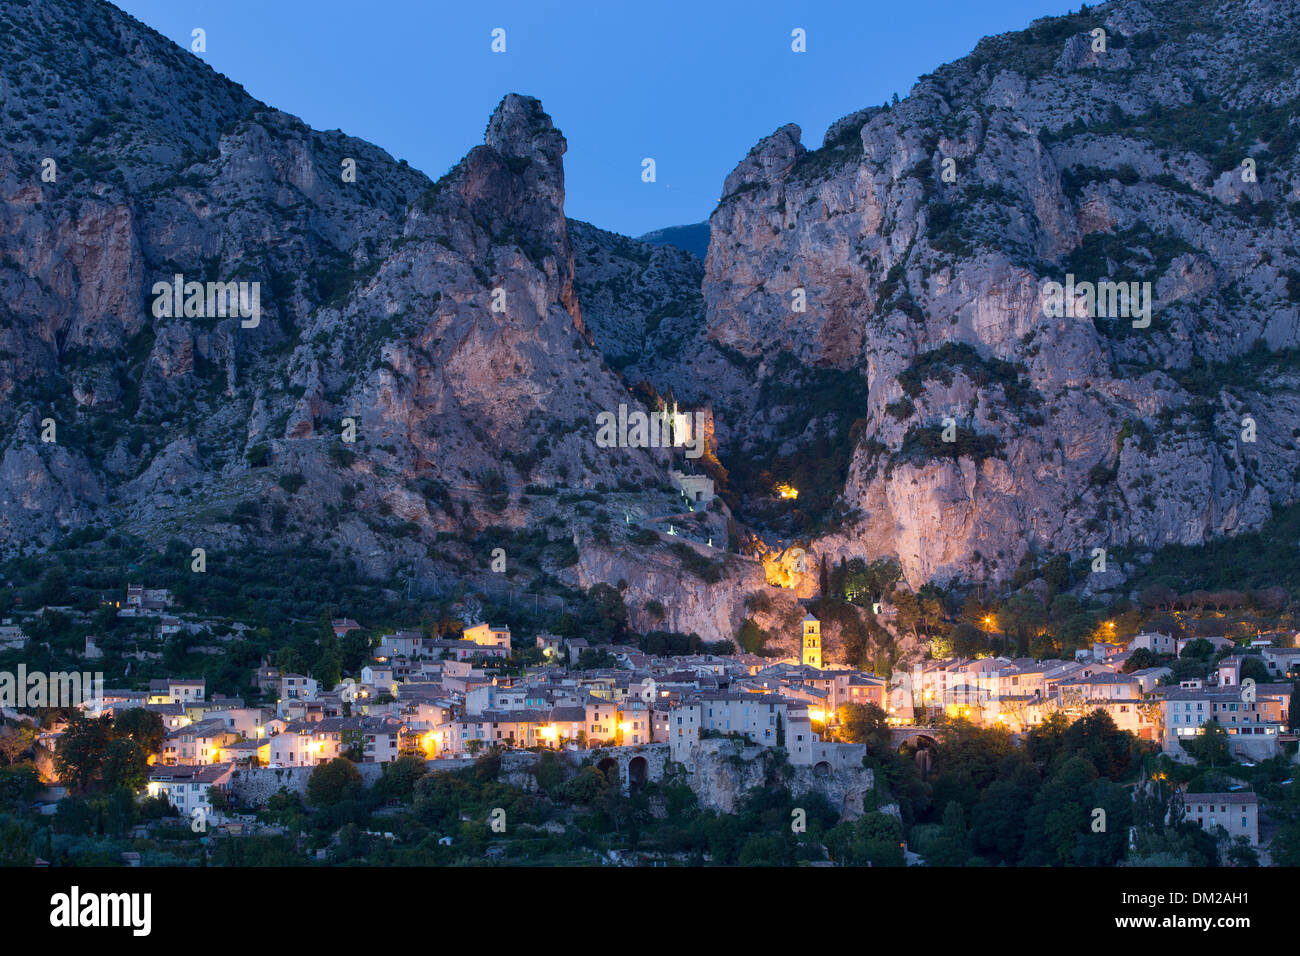 Moustiers-Sainte-Marie at dusk, Alpes-de-Haute-Provence, France - Stock Image